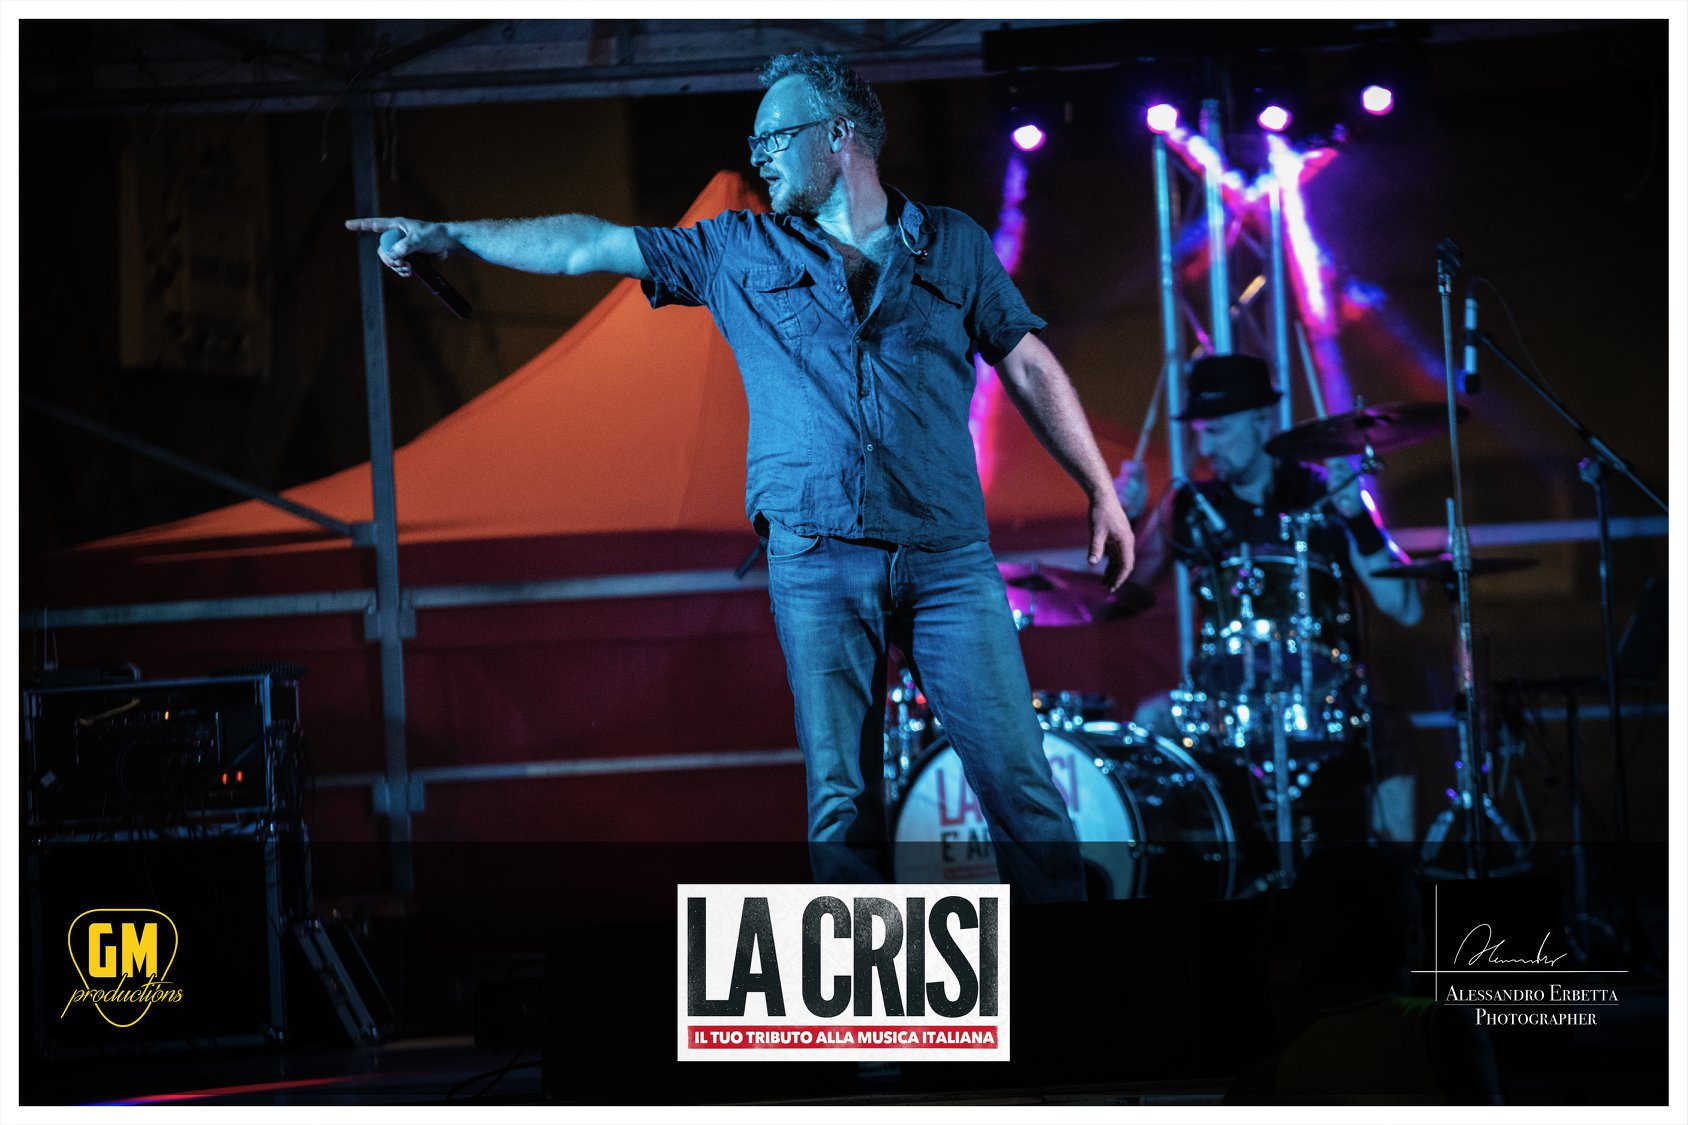 La Crisi - Party band - Tributo musica italiana picture